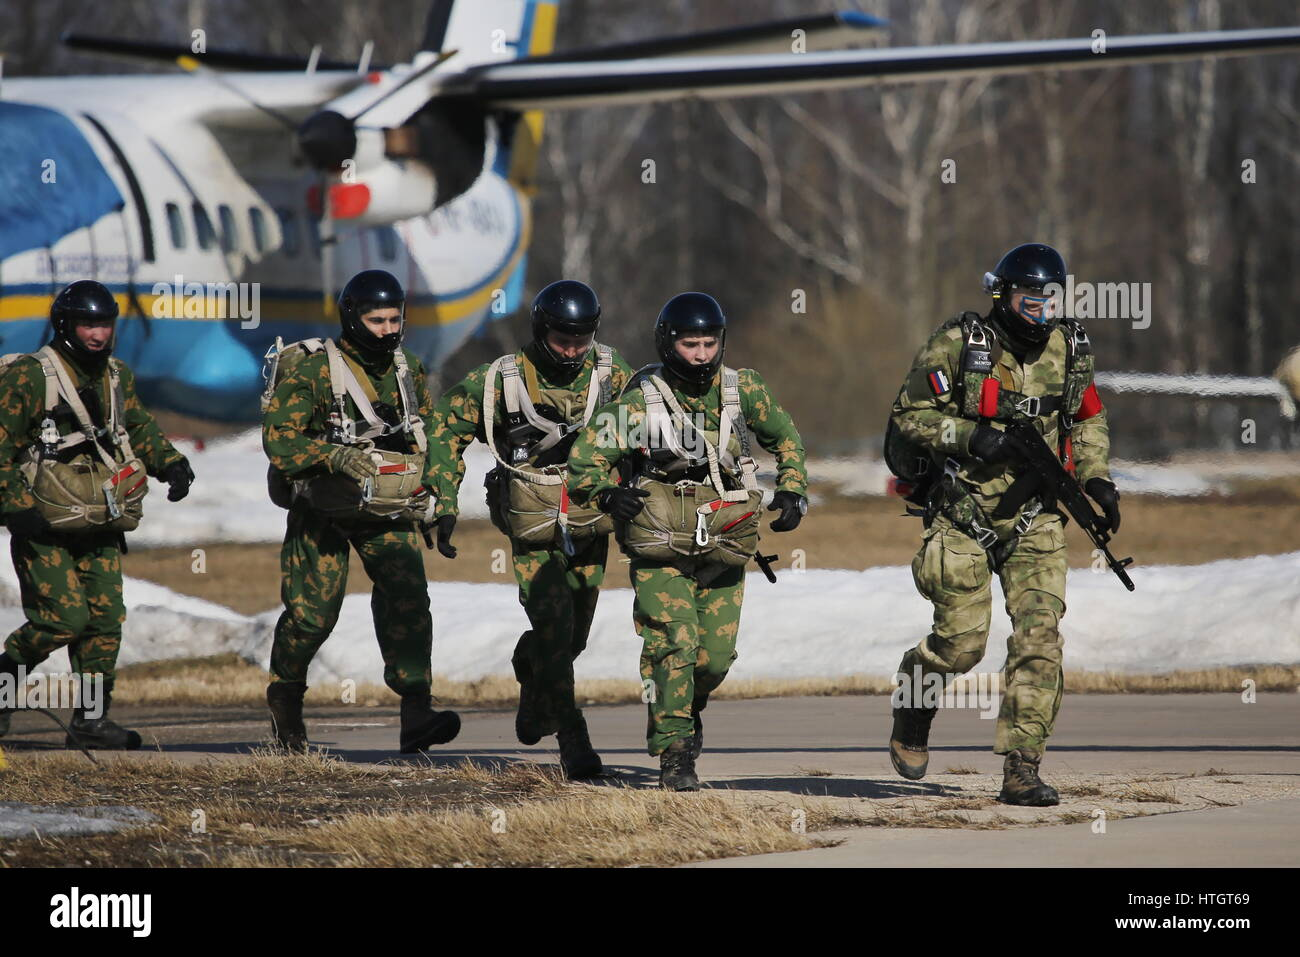 Special Forces Vityaz: training, photo 89